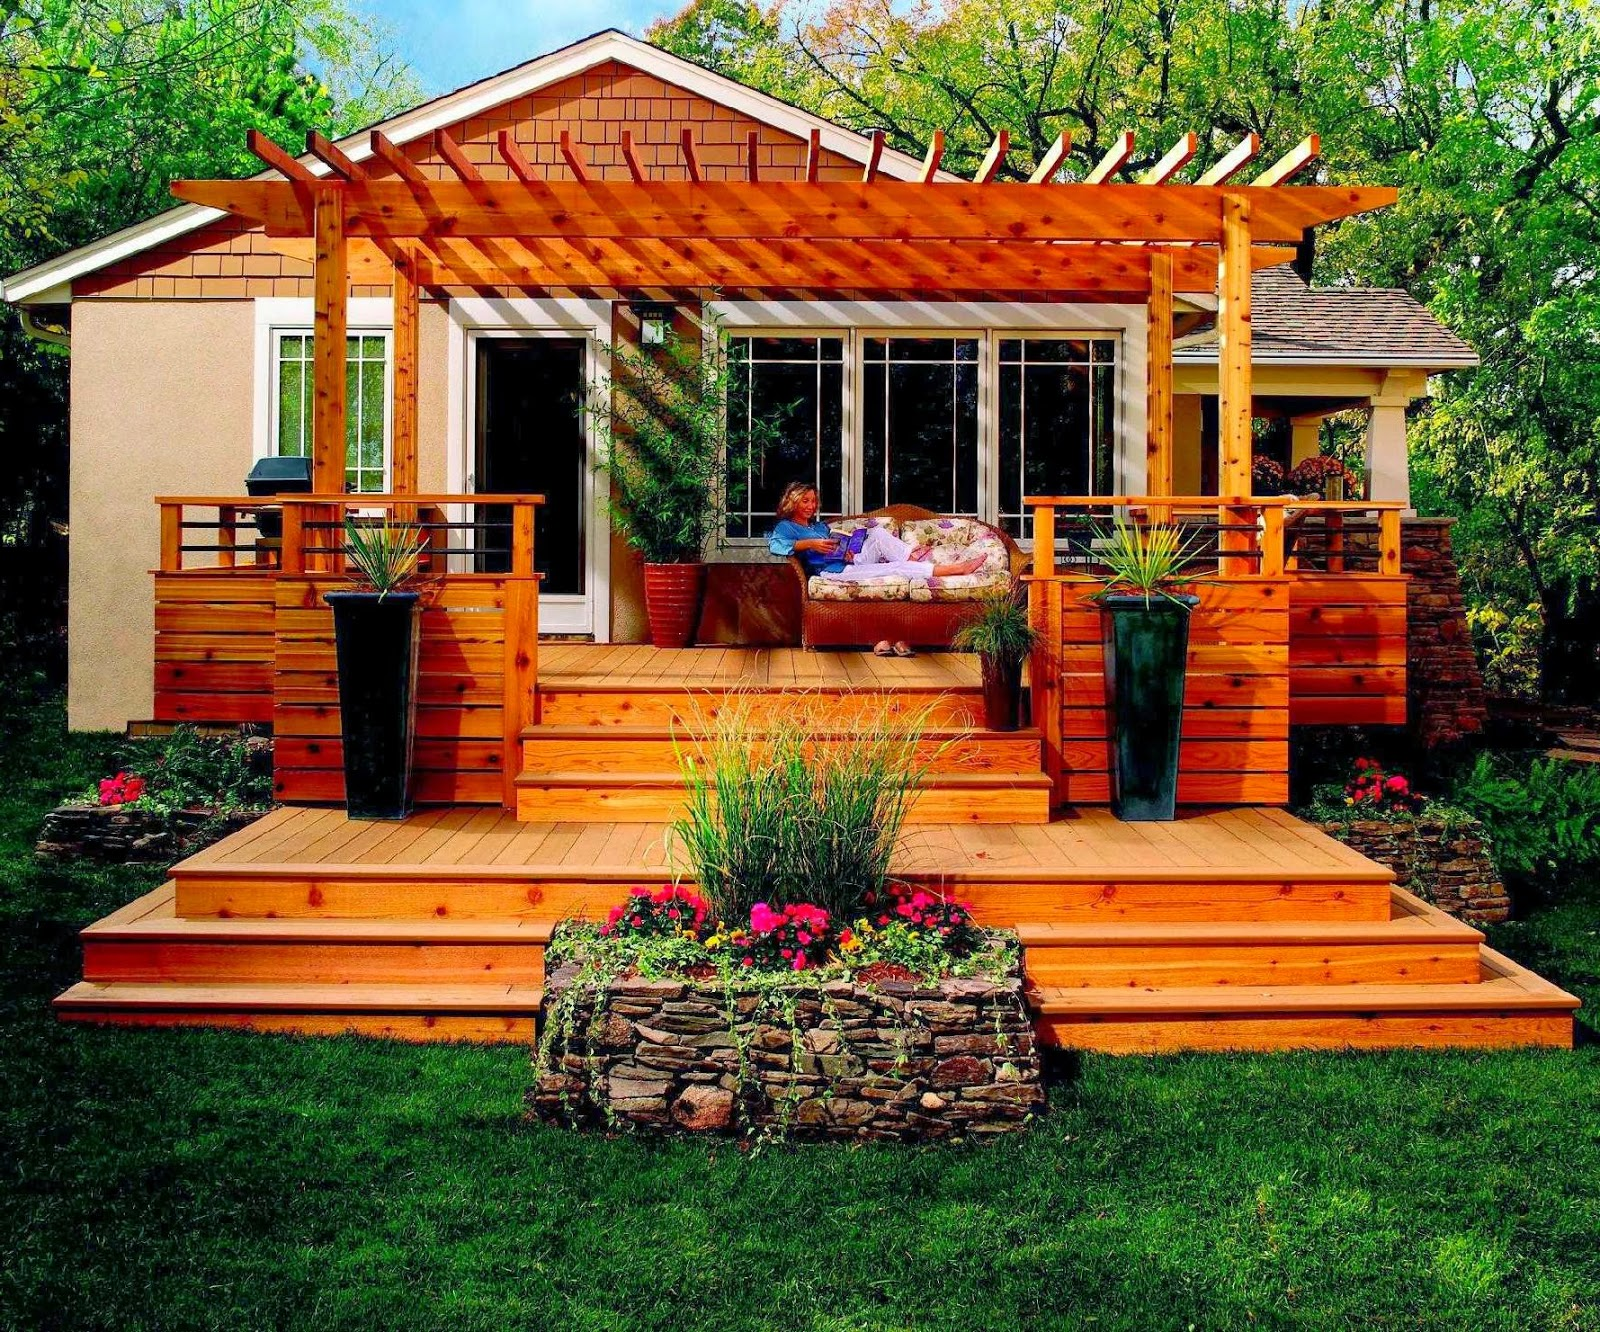 Backyard Deck Design : Awesome backyard deck design  Backyard Design Ideas